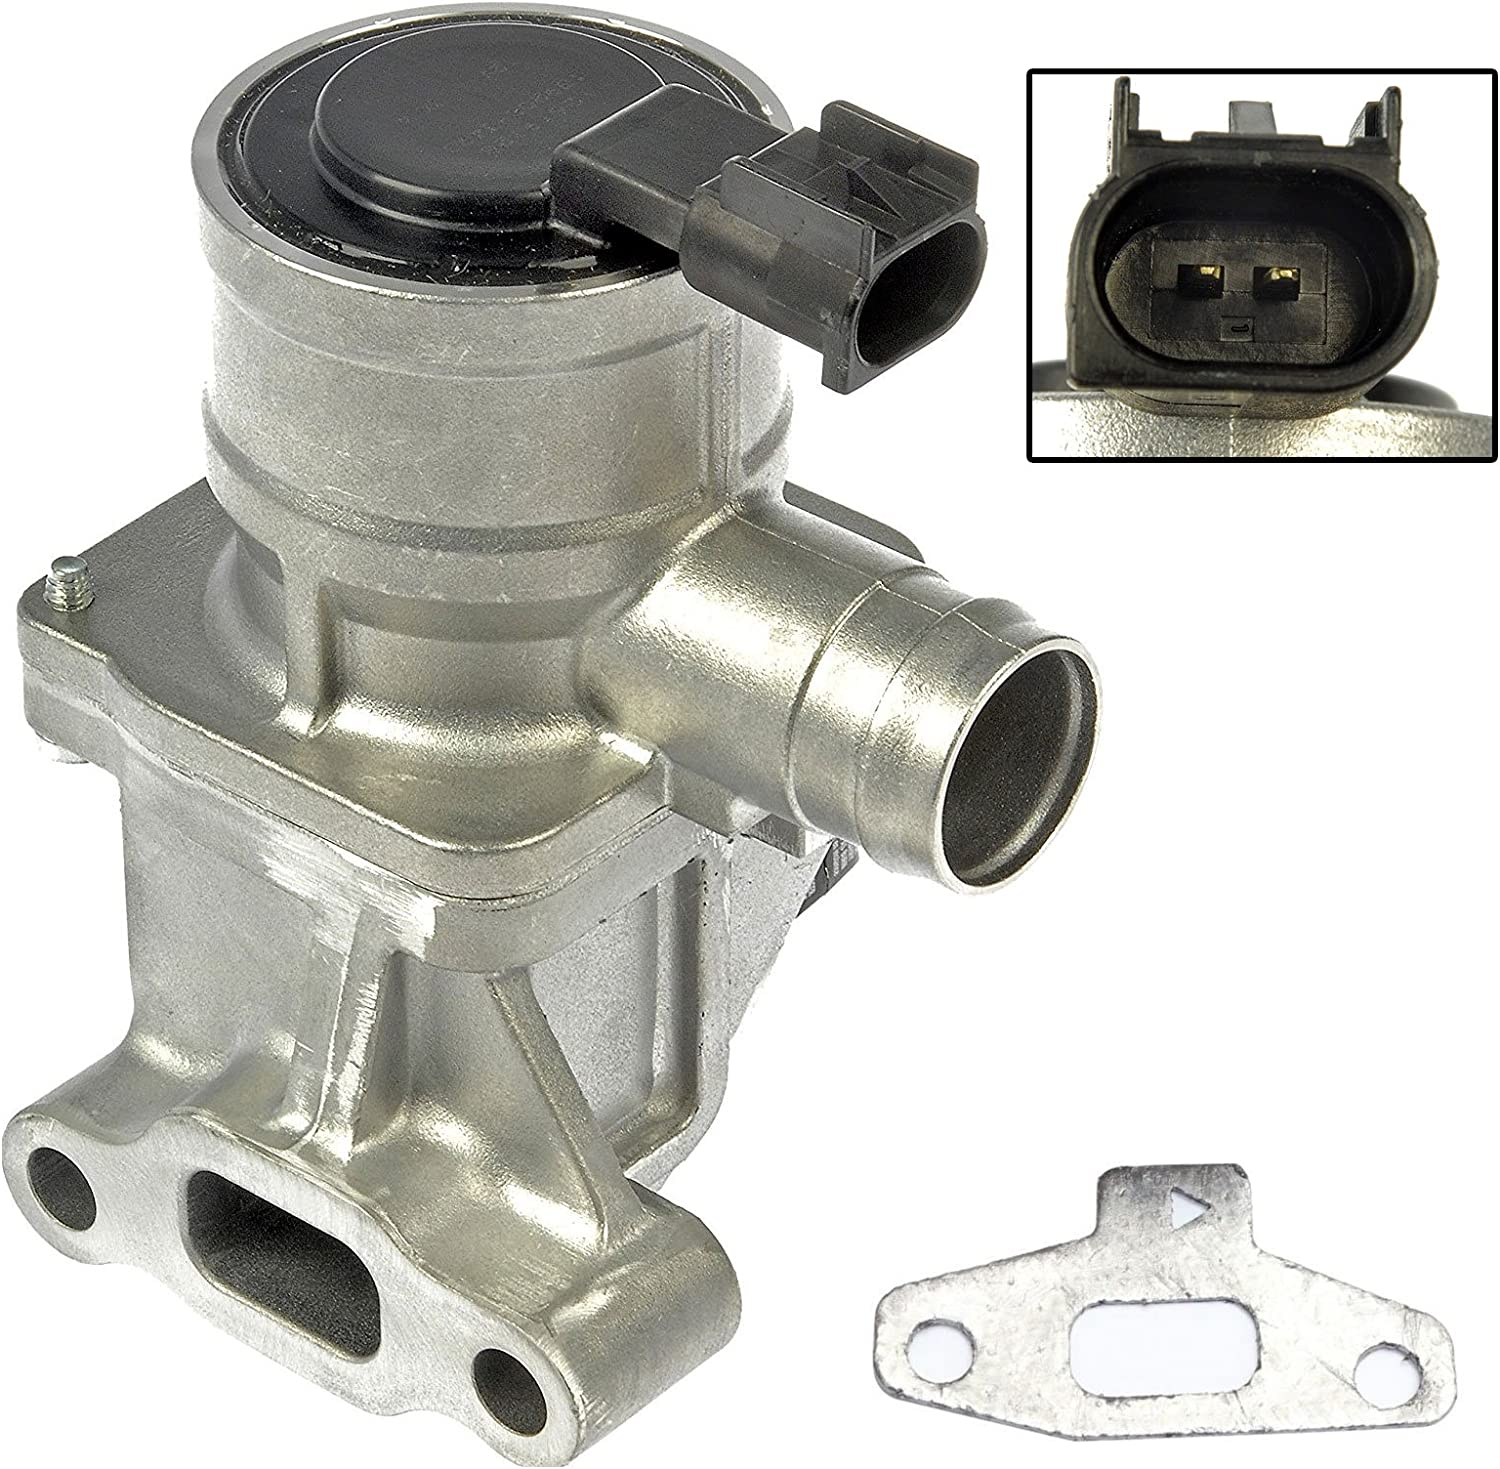 Air Injection Check Valve For Olds Chevy Chevrolet Trailblazer GMC Envoy Replaces OE# 12575655